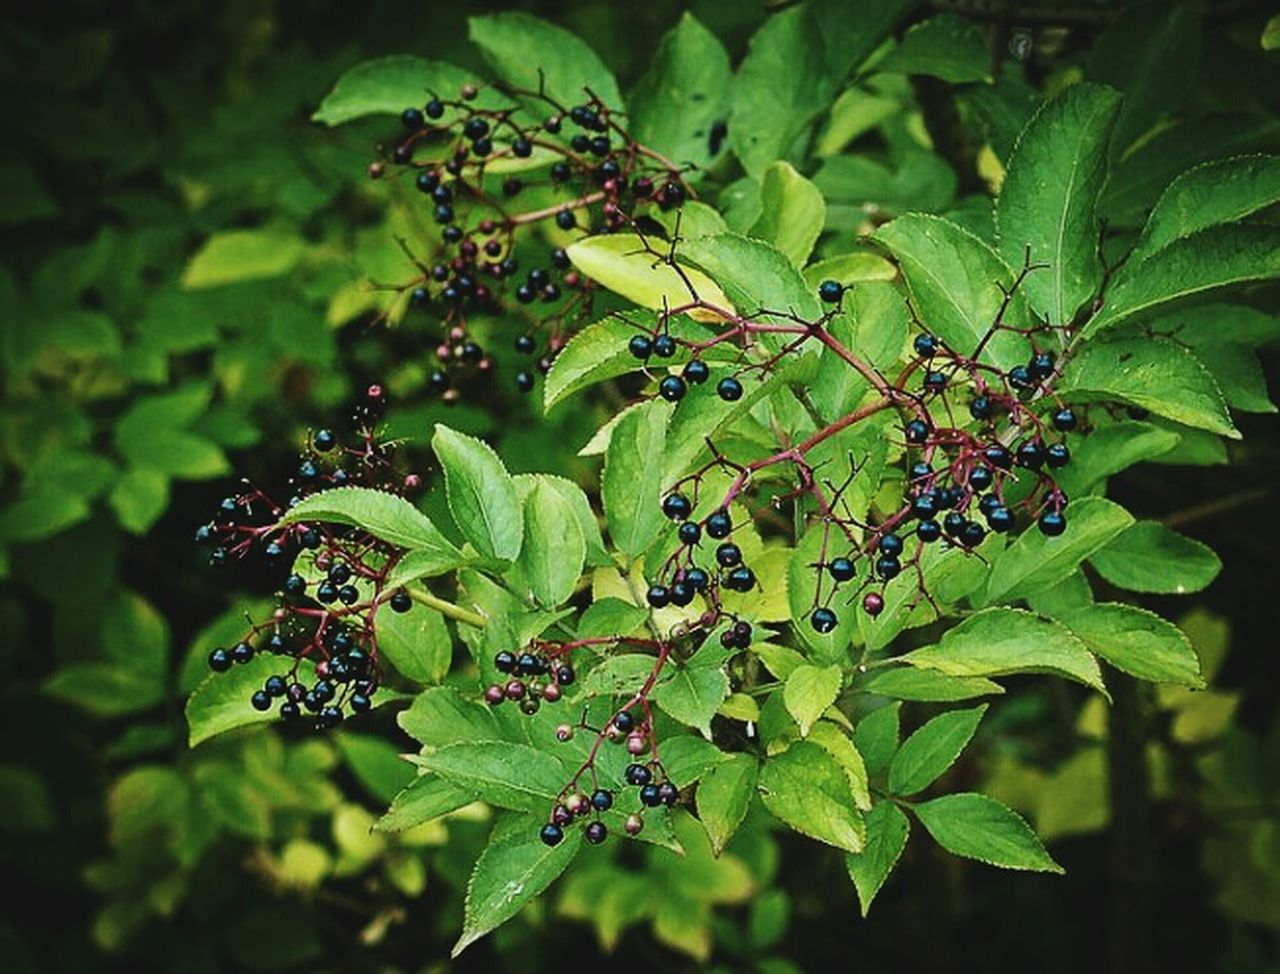 Autumn berries Nature Leaf Growth Green Color Plant Outdoors Fruit Close-up Beauty In Nature No People Day Animal Themes Freshness Horizontal Berries Fall Autumn Ireland Northern Ireland